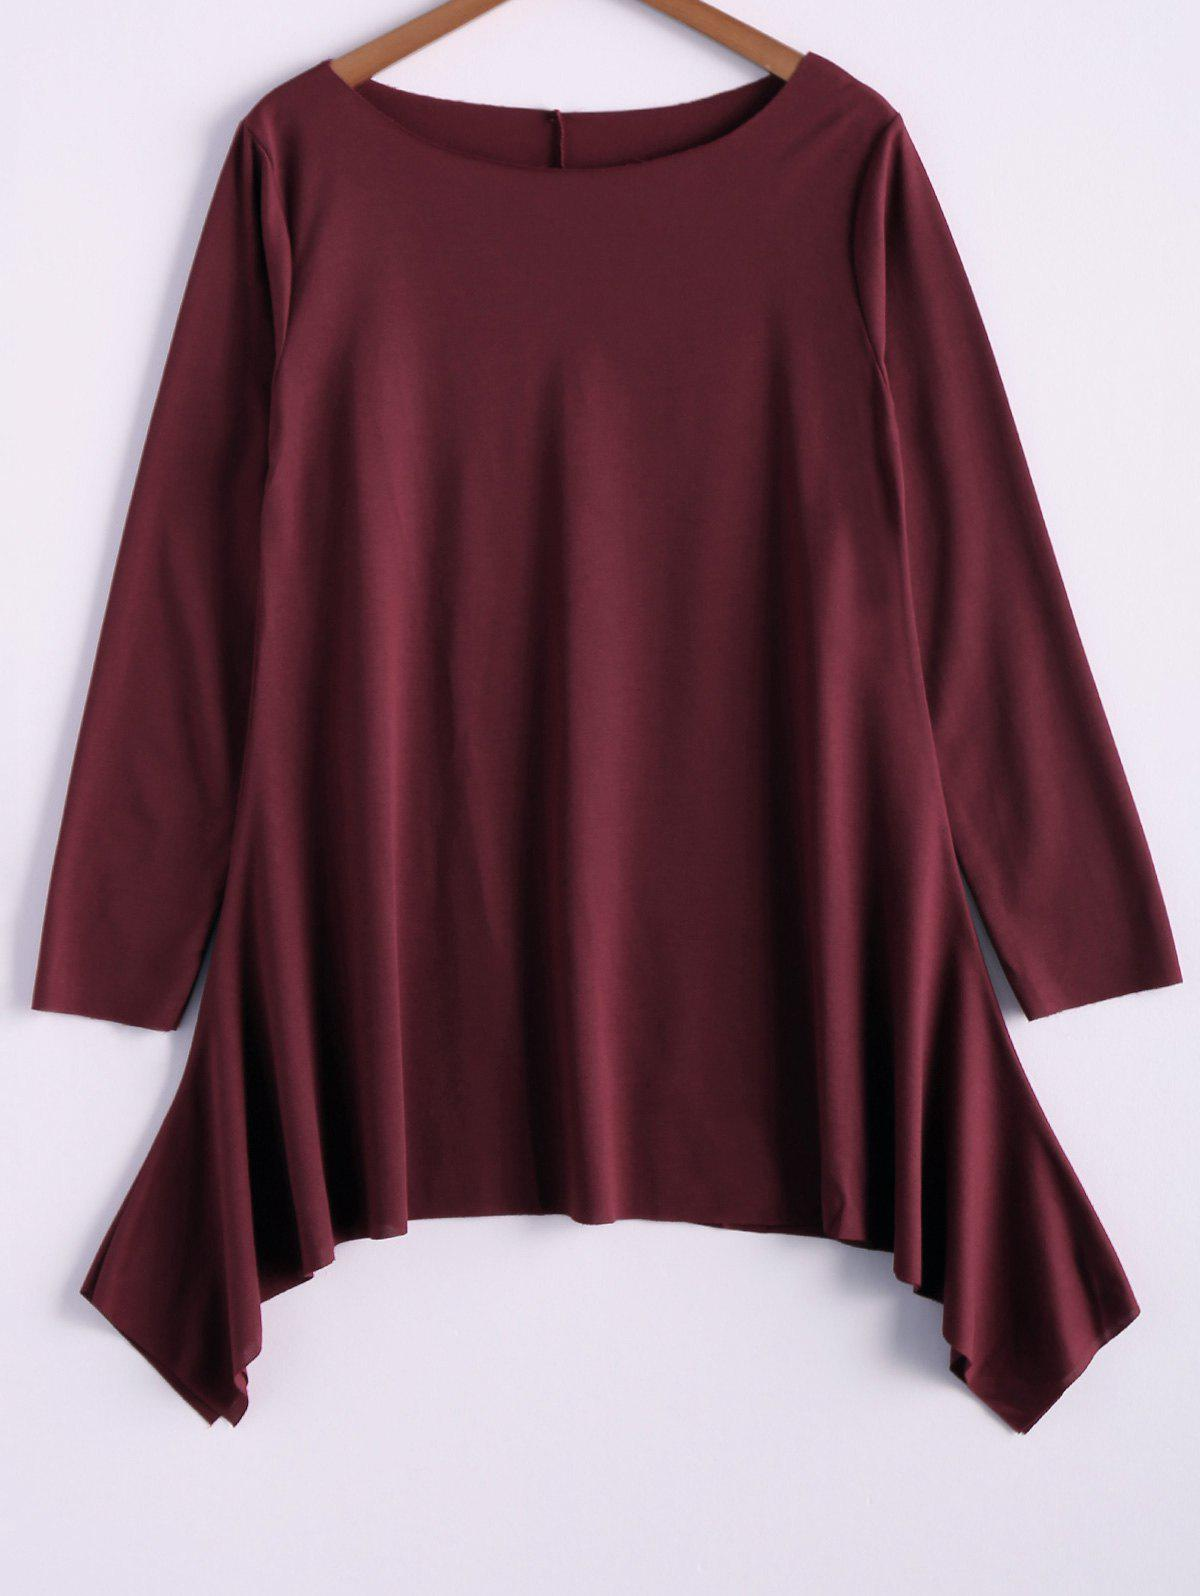 Casual Skew Collar Long Sleeve T-Shirt For Women - WINE RED 2XL